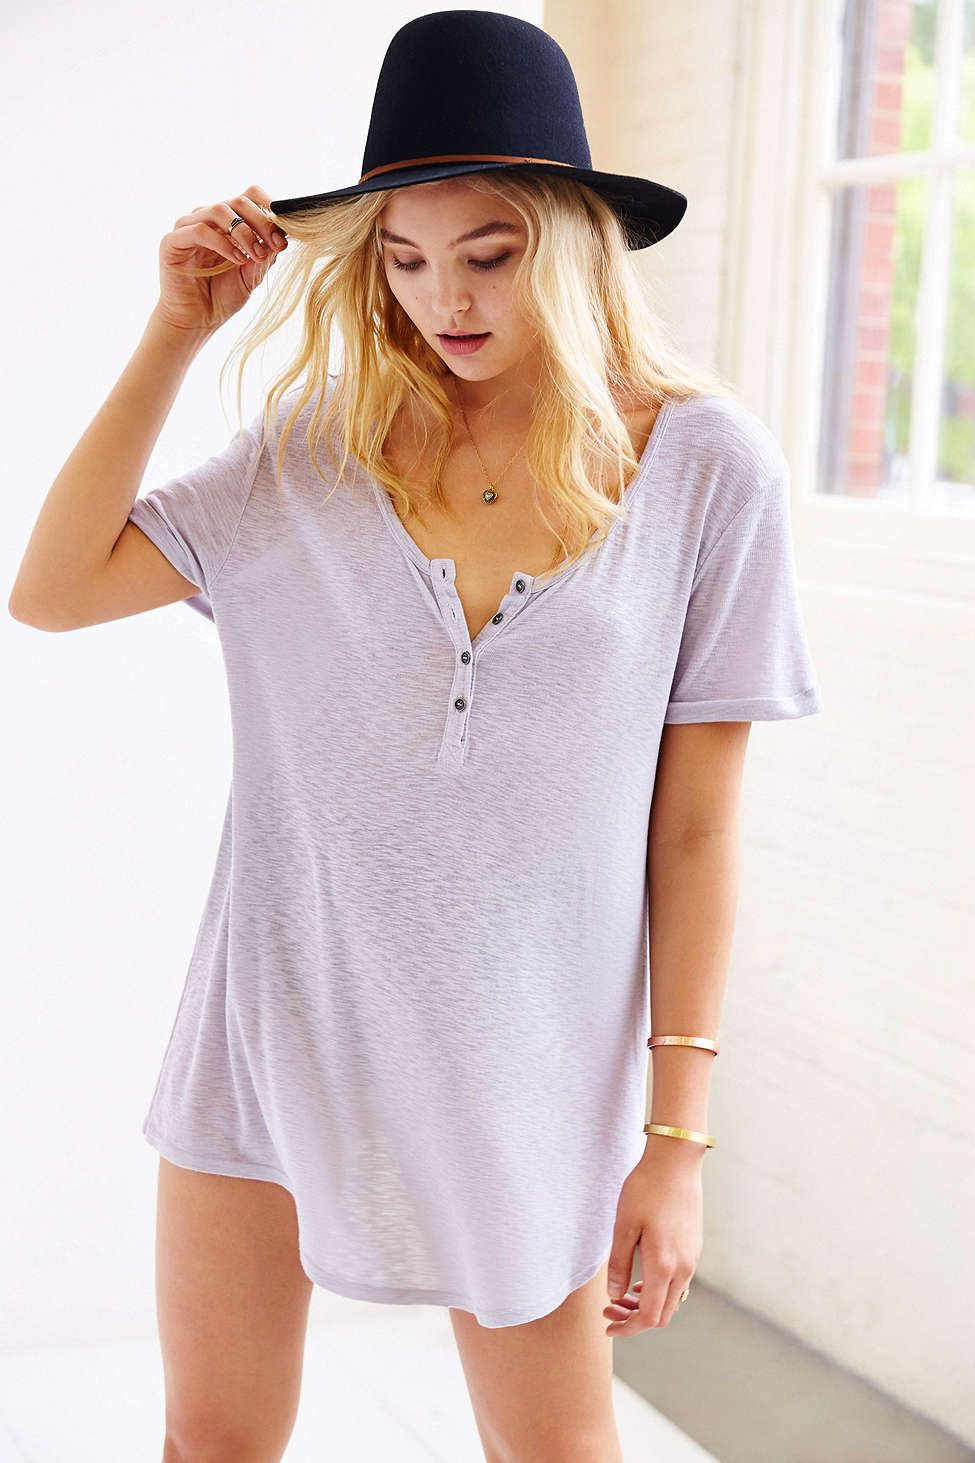 62611a4fe3a7 Truly Madly Deeply Henley Tunic Top - Urban Outfitters   buy list ...